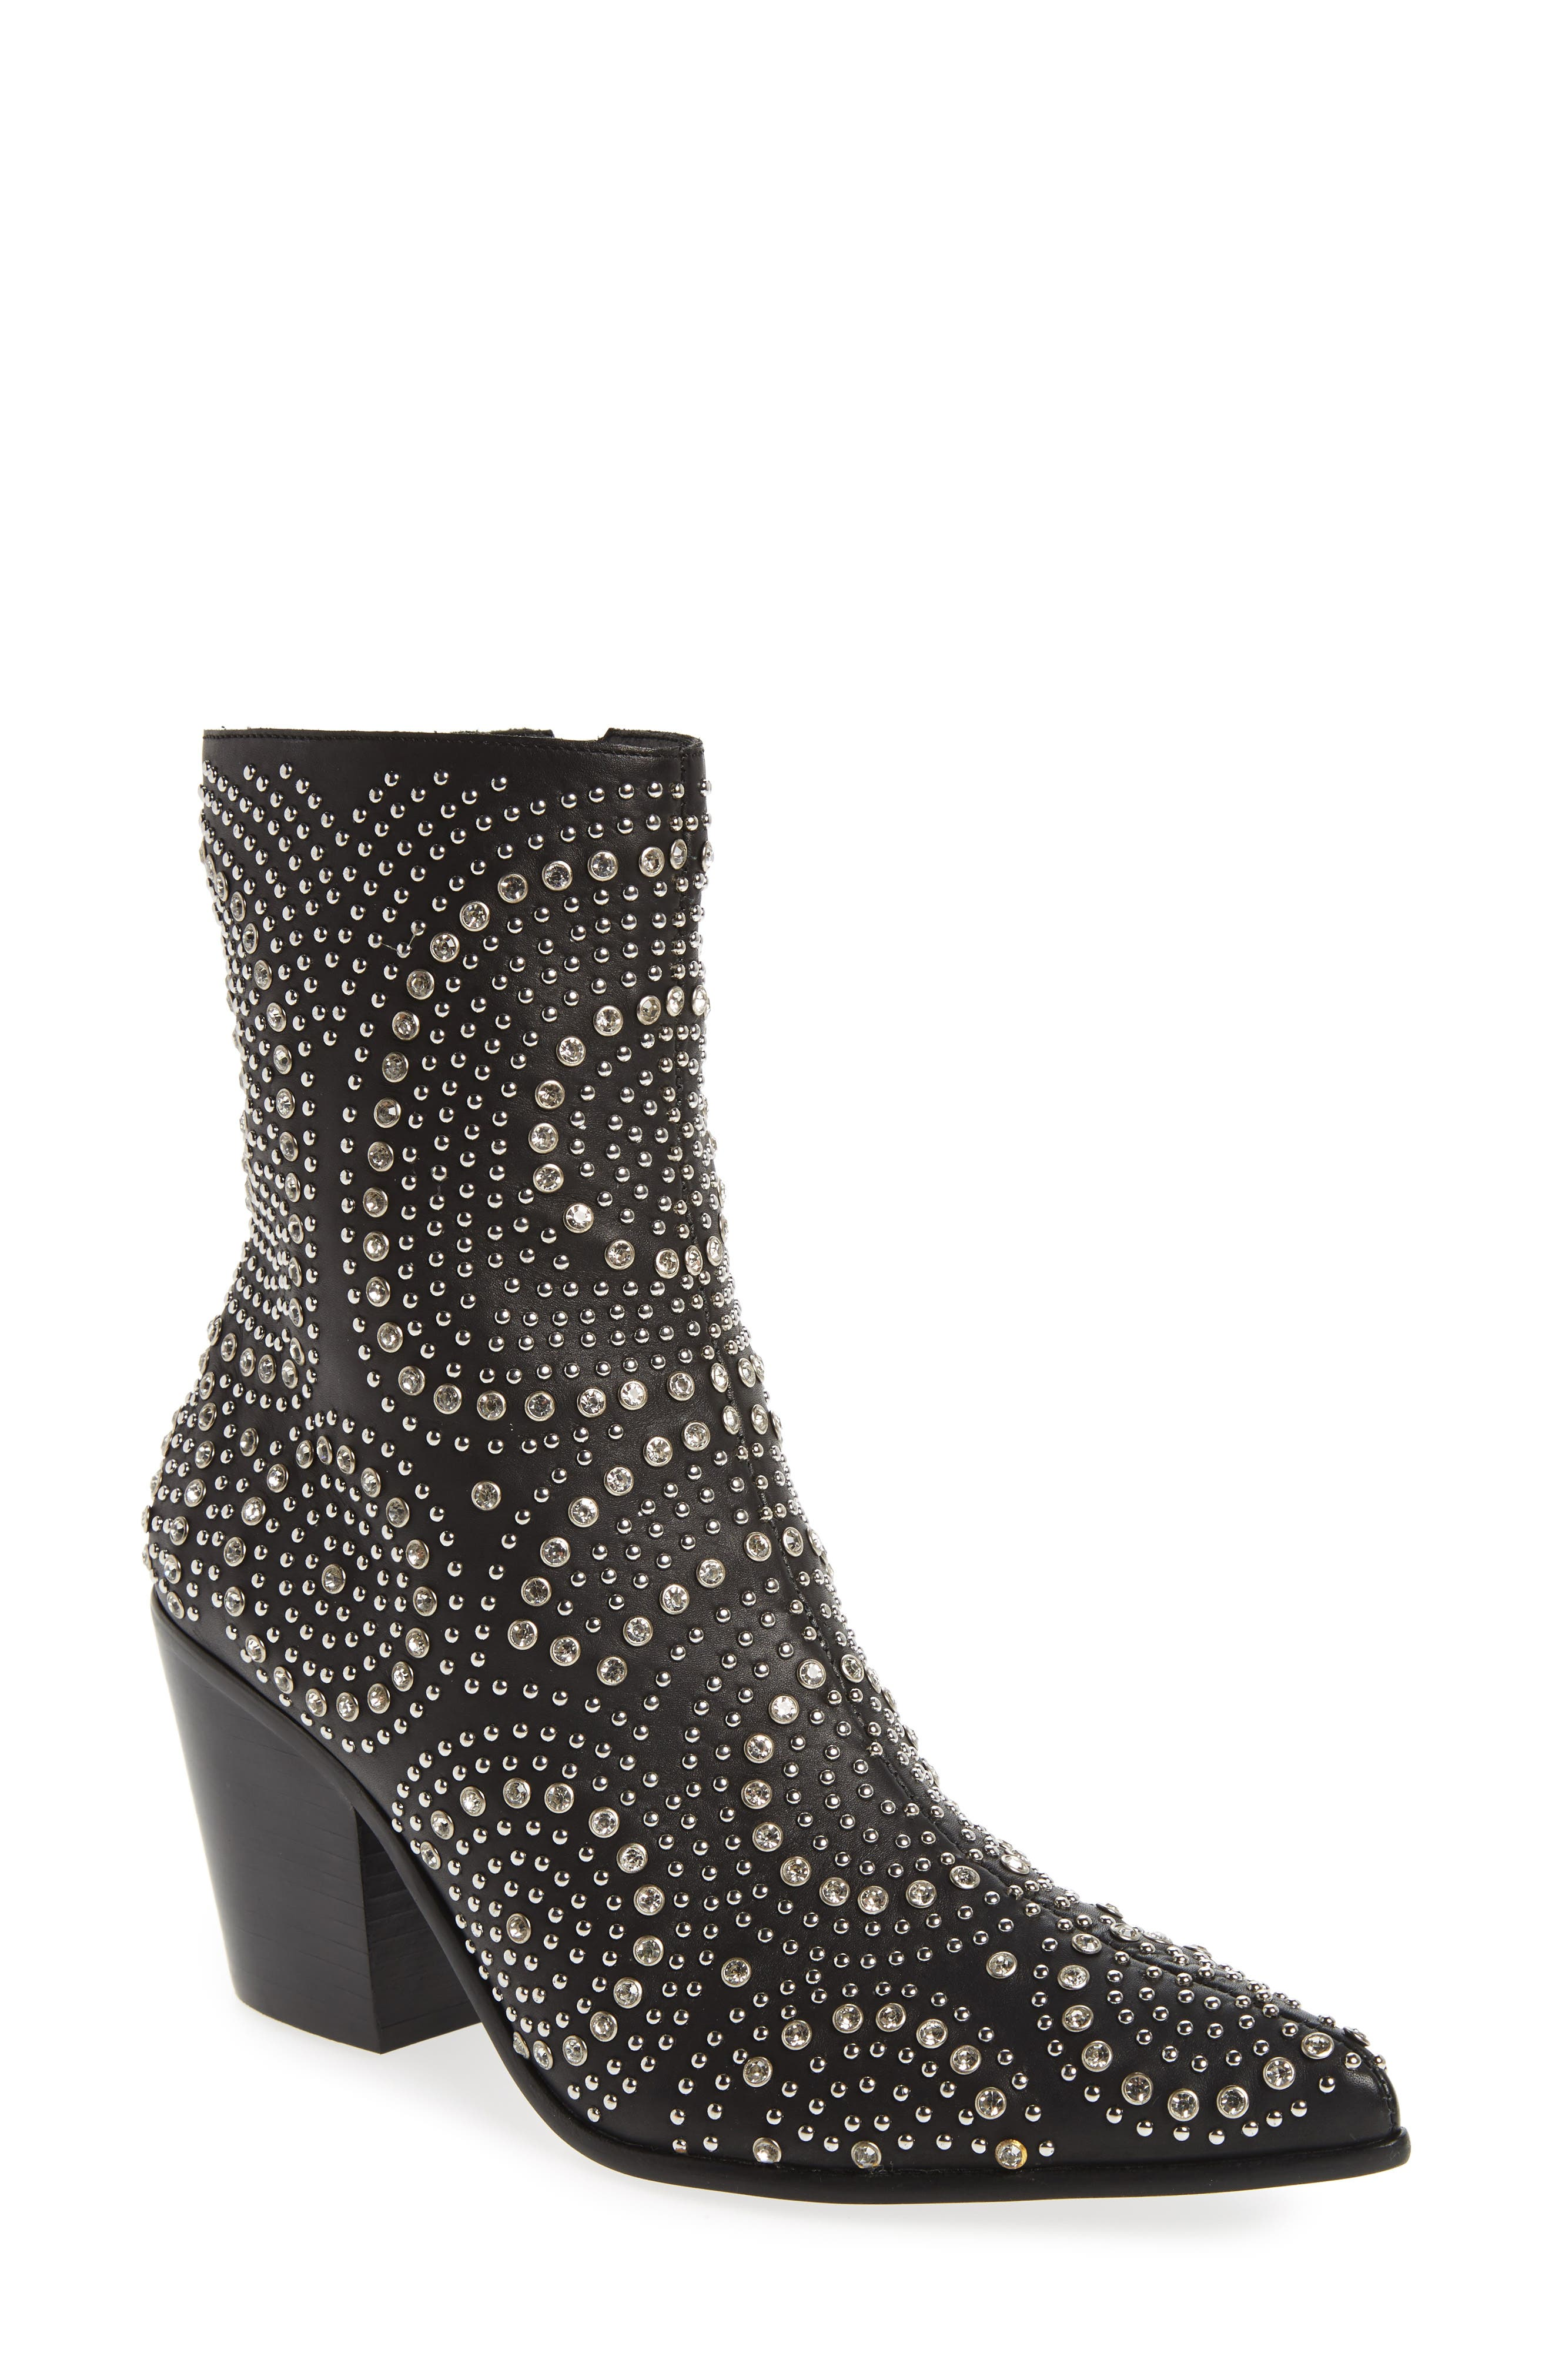 ACE-SJ Embellished Bootie,                             Main thumbnail 1, color,                             BLACK/ SILVER SUEDE